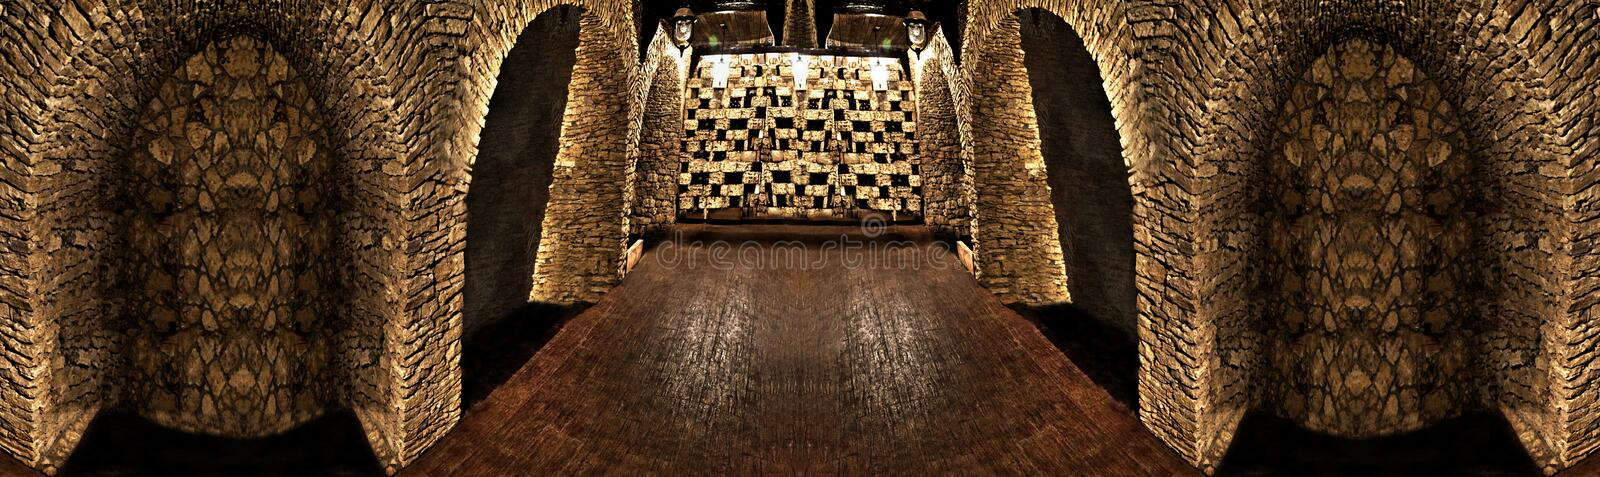 The wine cellar is made of stone stock photo